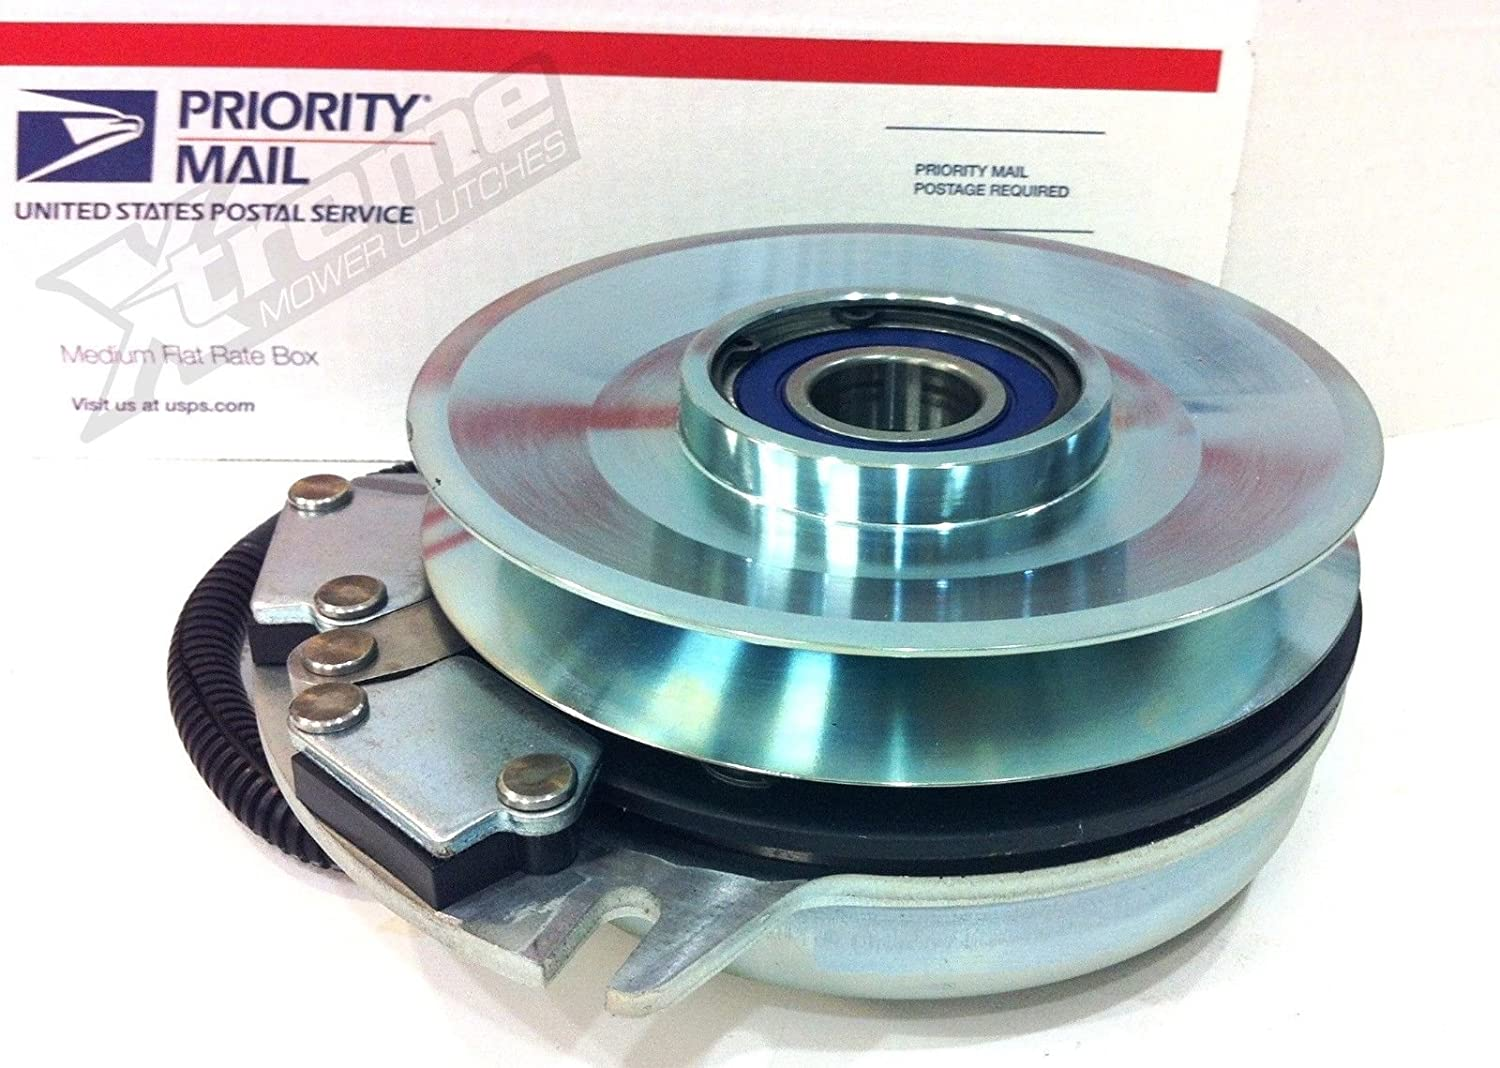 81pHlvLGtLL._SL1500_ amazon com replaces warner 5218 6 cub cadet pto clutch 917 3403 Borg Warner Clutch Catalog at crackthecode.co